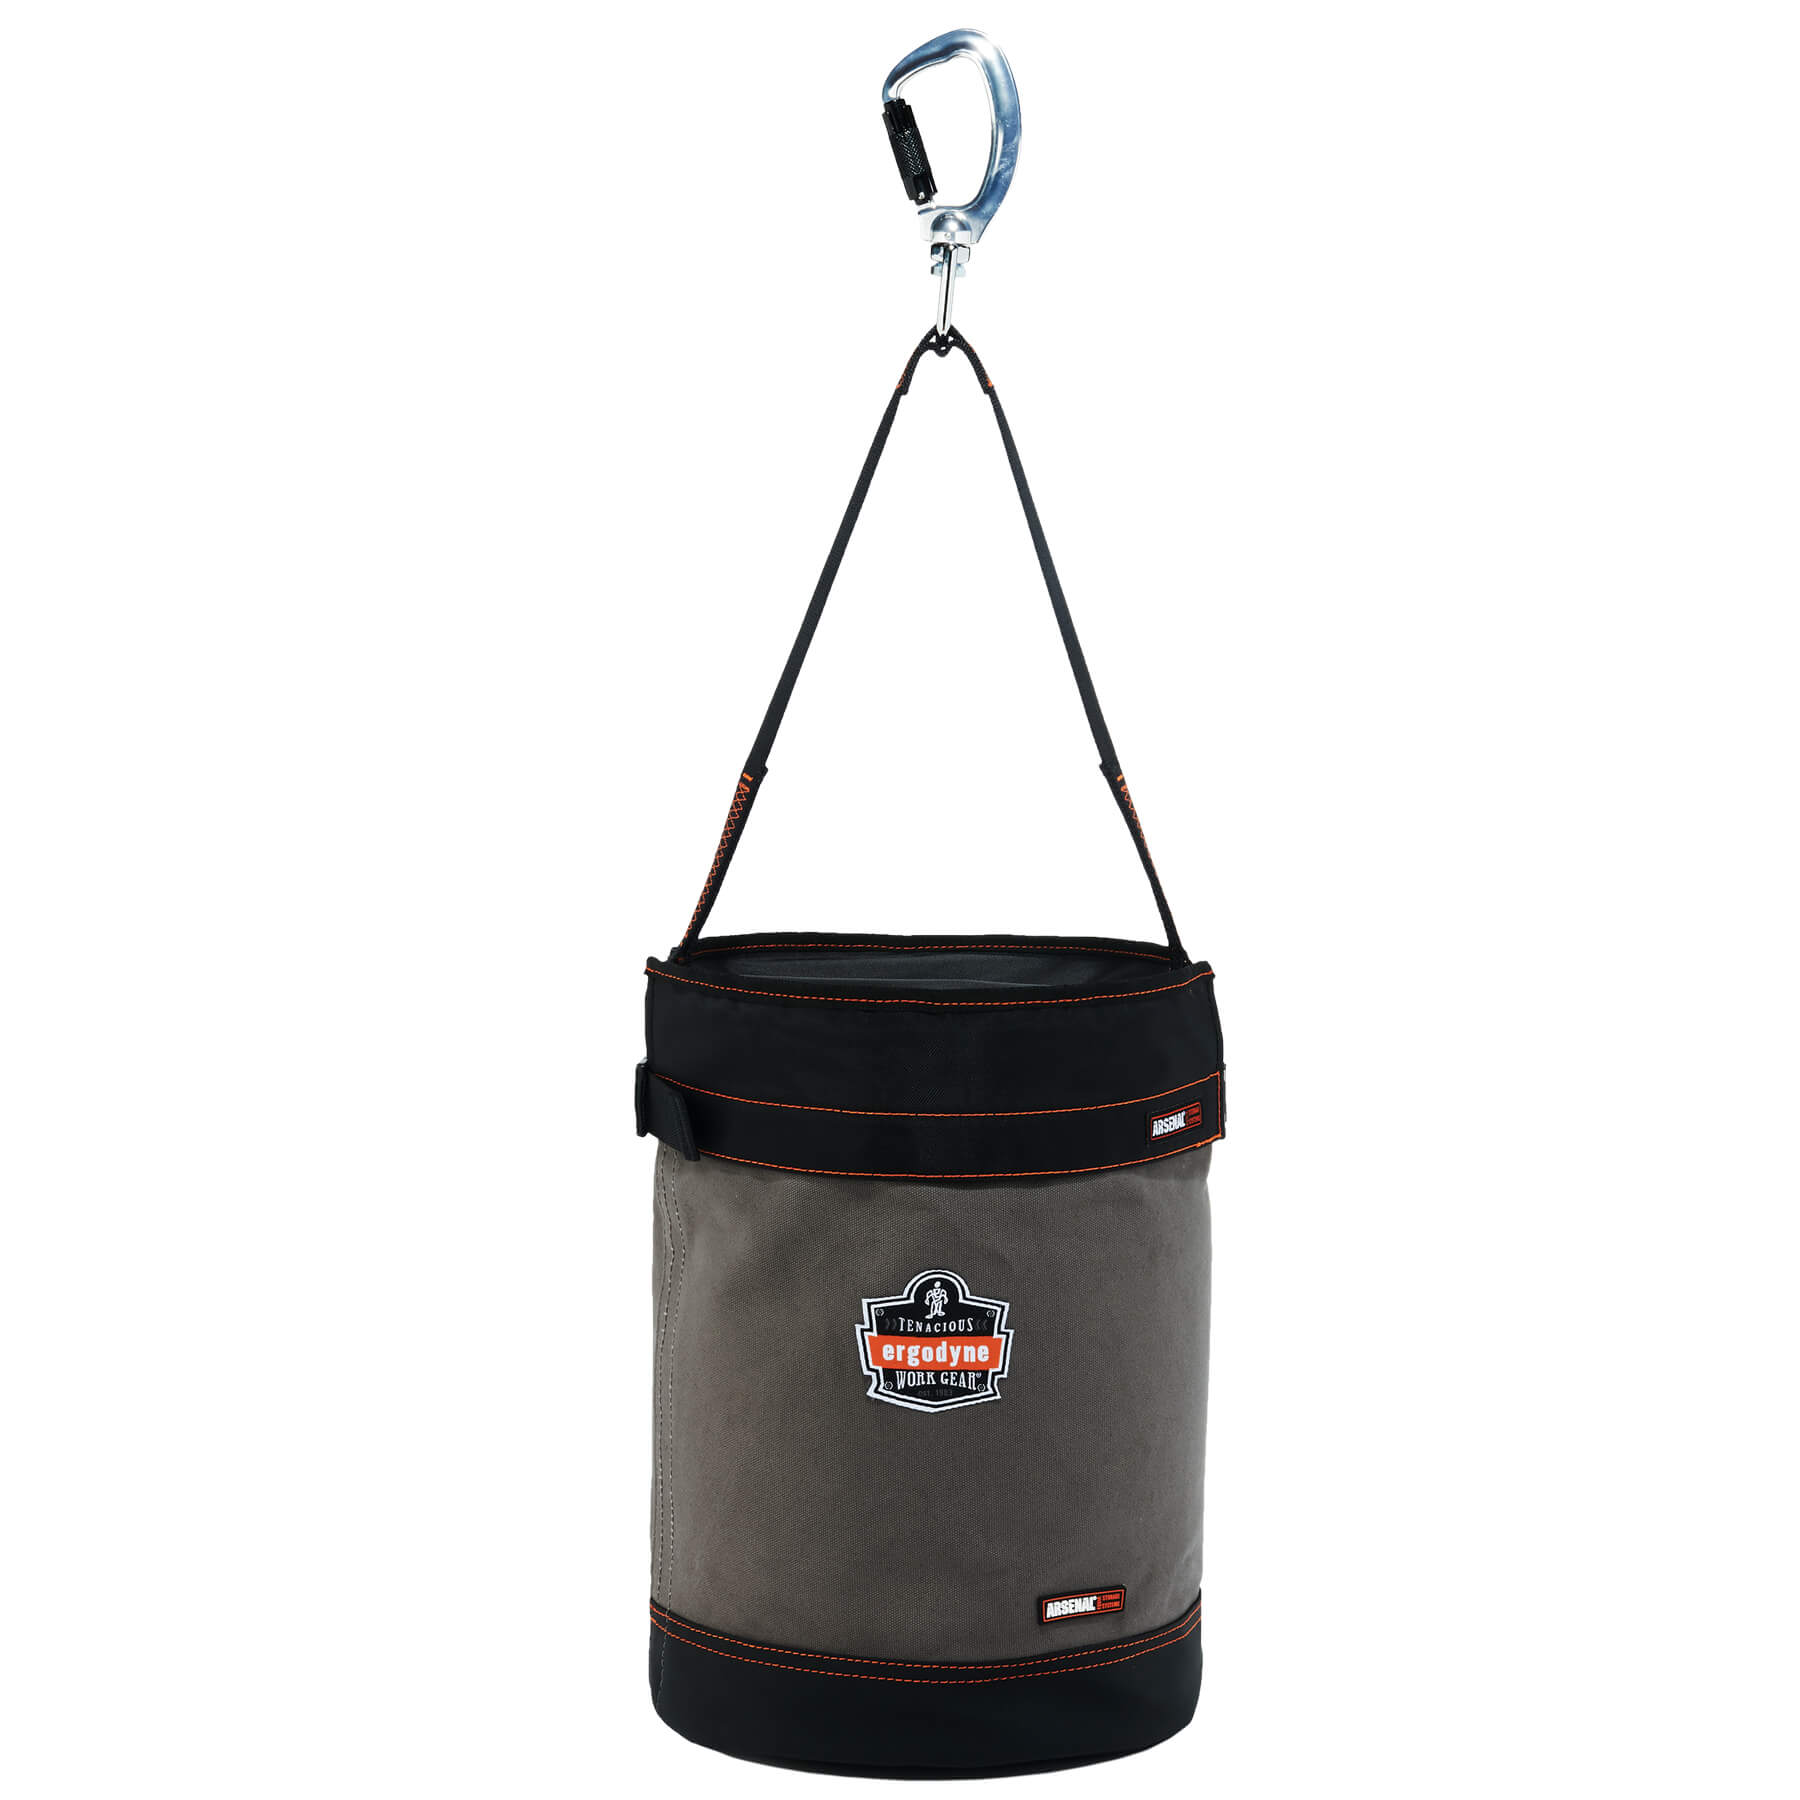 Arsenal 5940T Swiveling Carabiner Canvas Hoist Bucket with Top